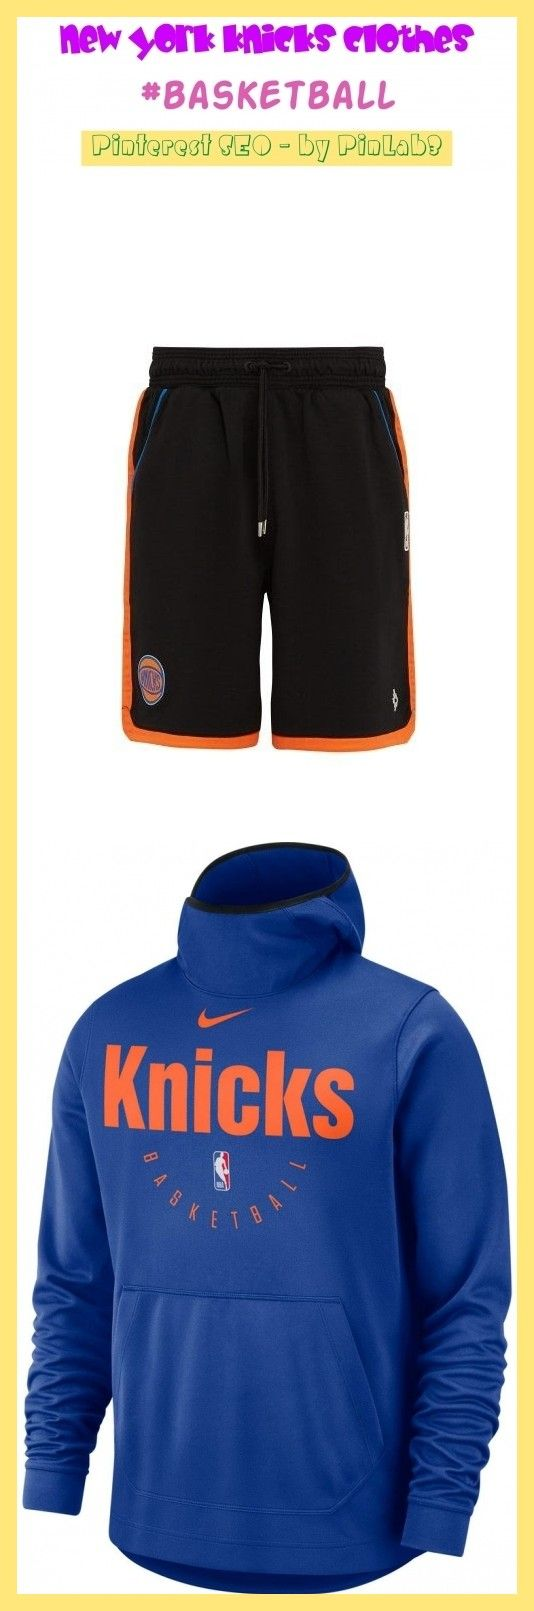 New York Knicks Clothes Knicks Clothes New York Knicks Kleidung New York Knicks Vetements Ropa De Los New York Knicks Logo New York Knicks Knicks Outfit